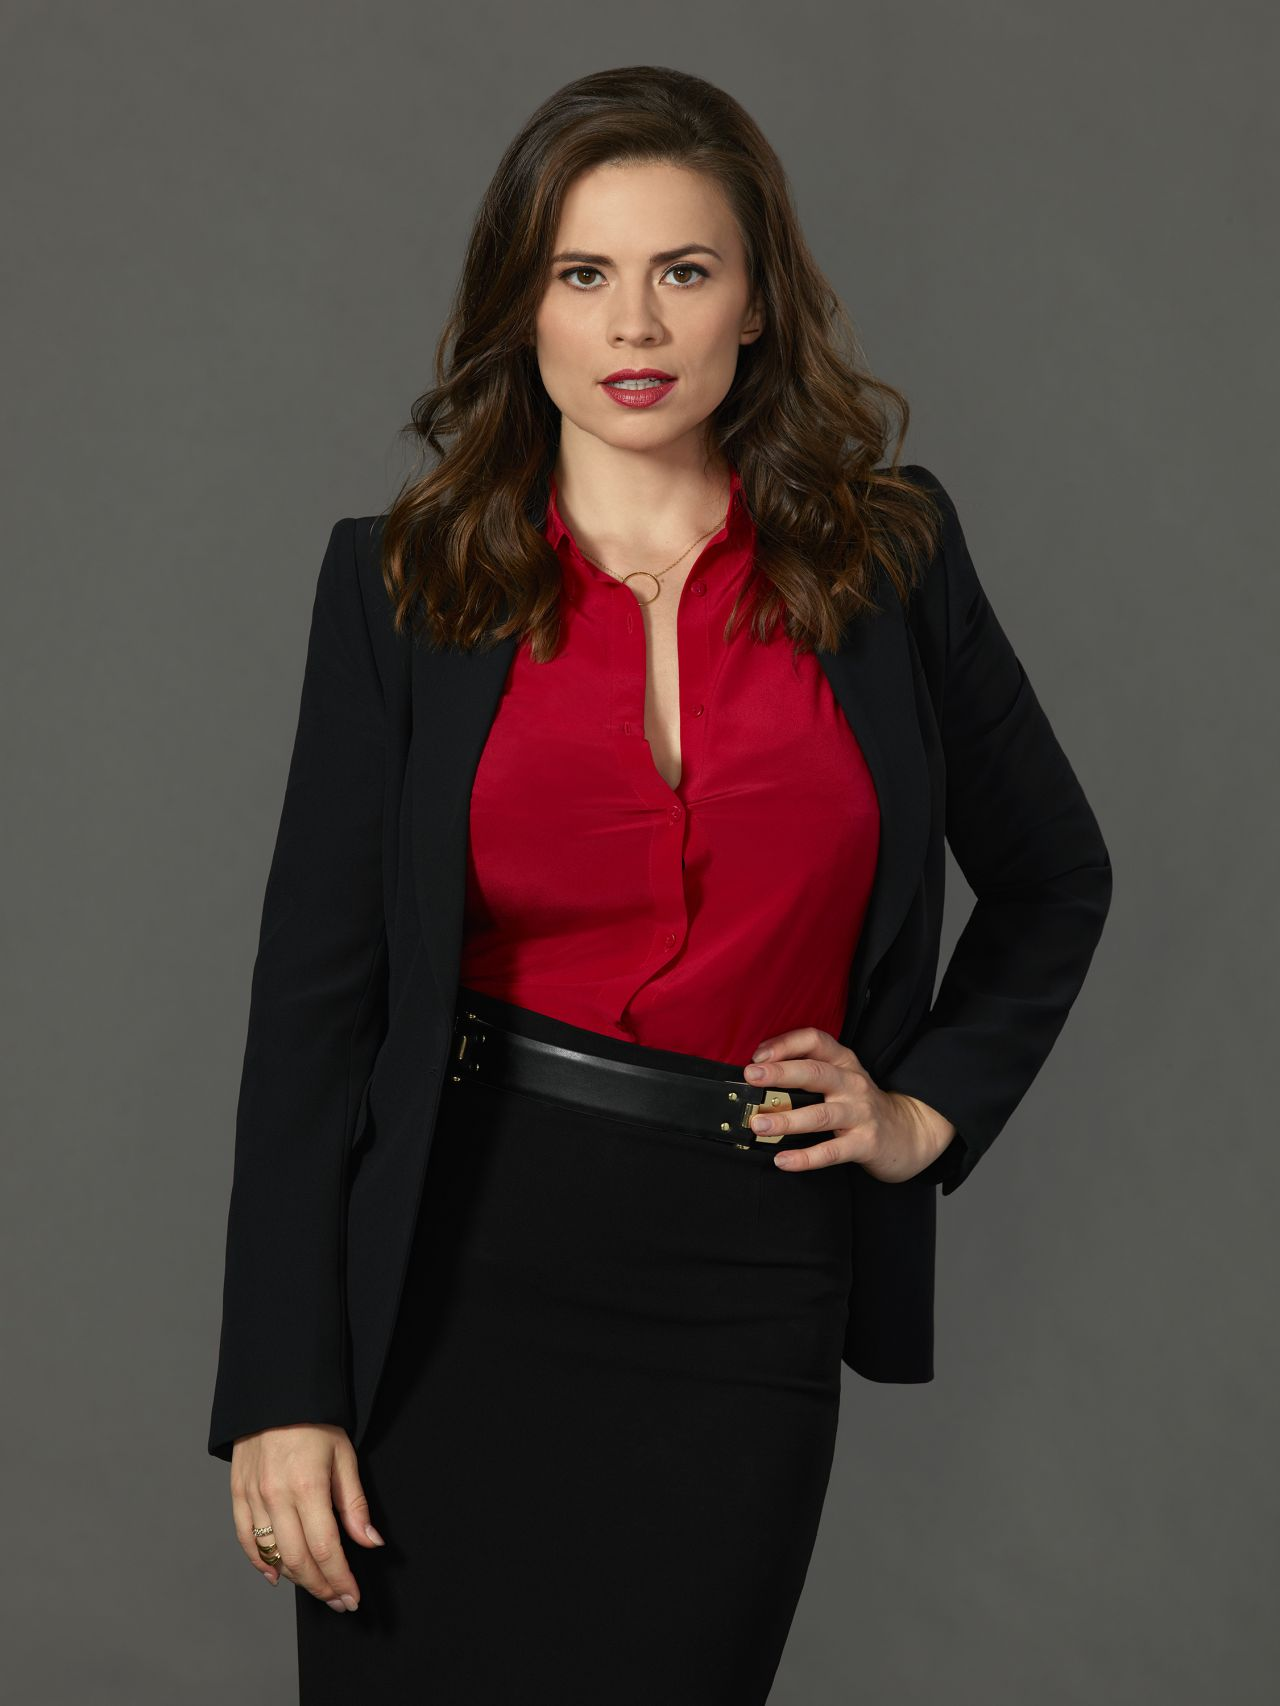 Hayley Atwell - Conviction Posters, Promos And Stills-4184